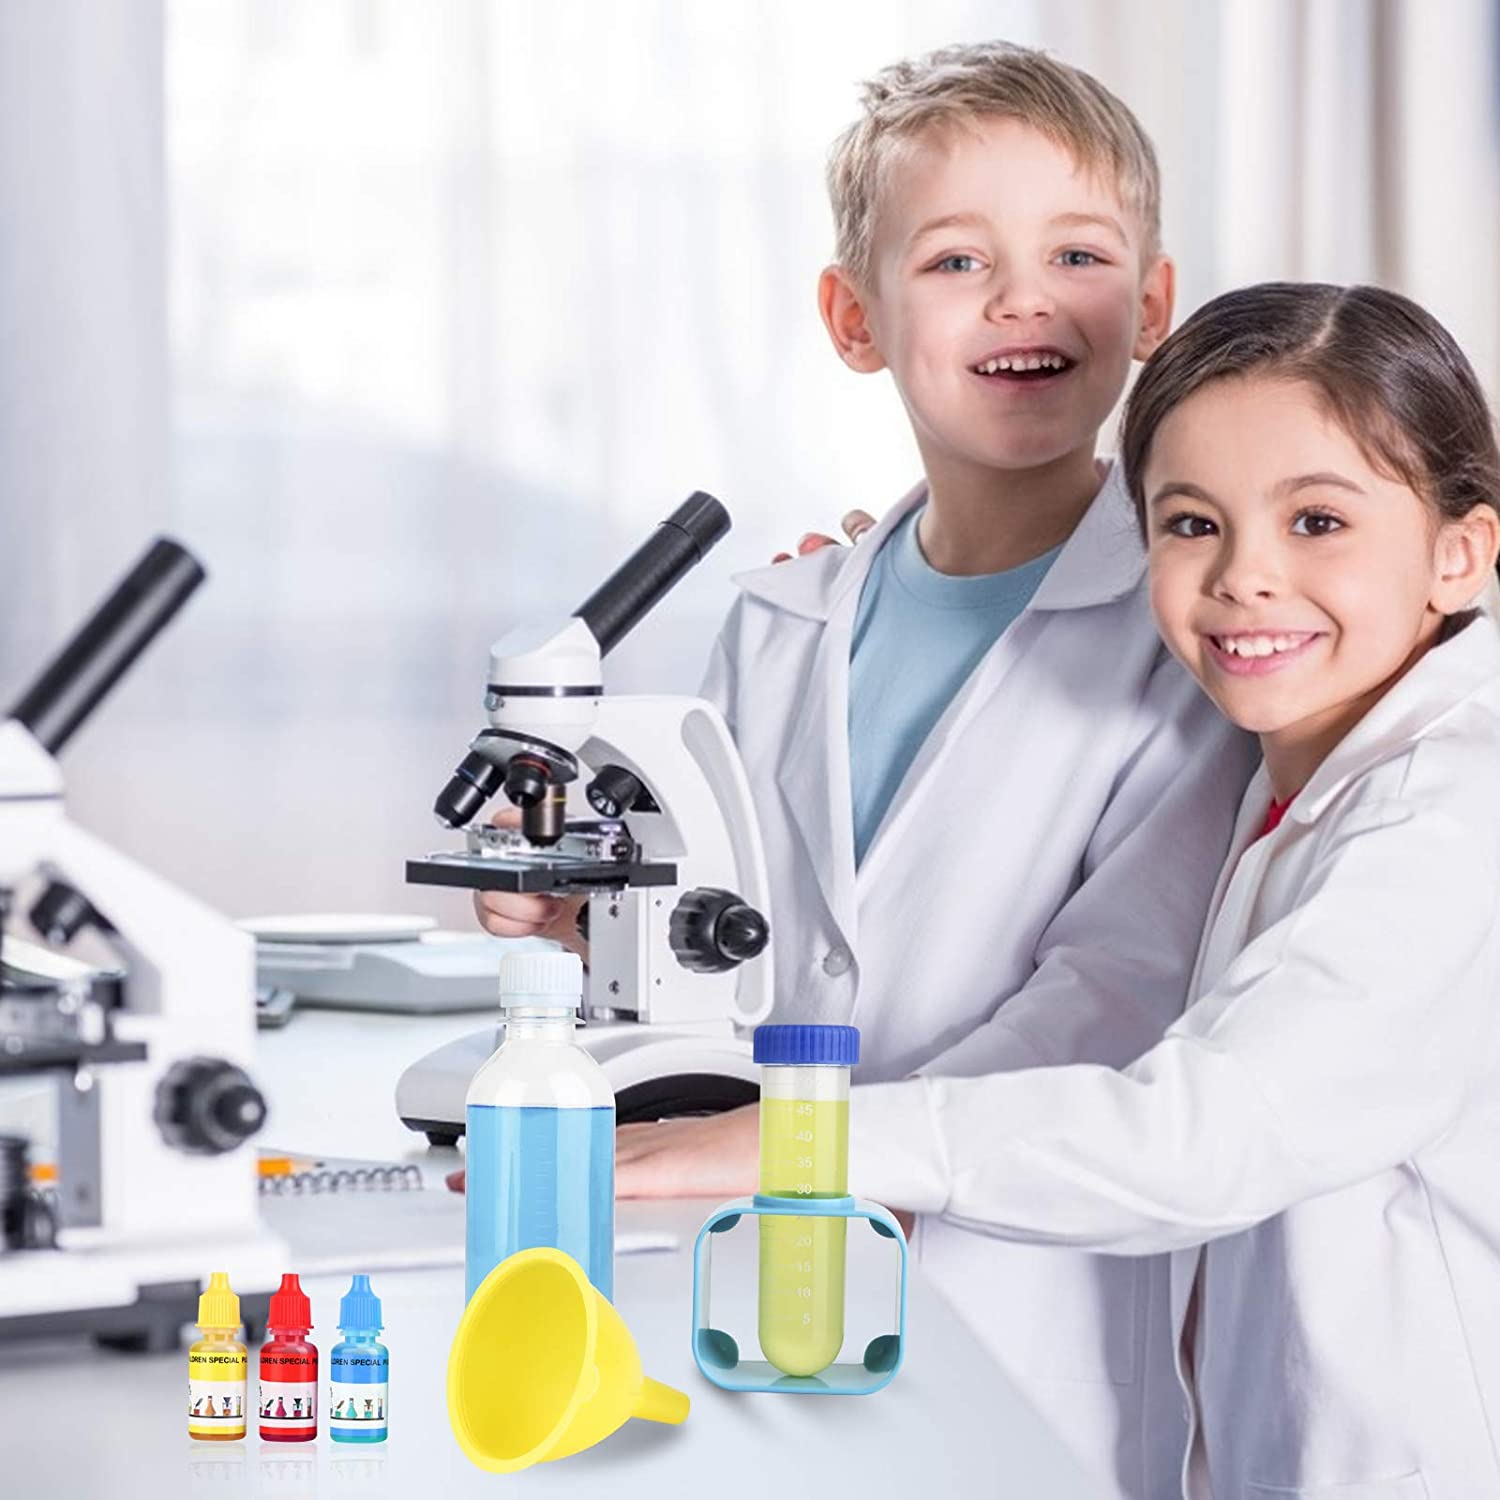 78 Science Experiments Set Educational Learning Science Toys Great Gifts for Hours of Fun Funspread Toys for 6 Year Old Boys Girls Science Kit for Kids